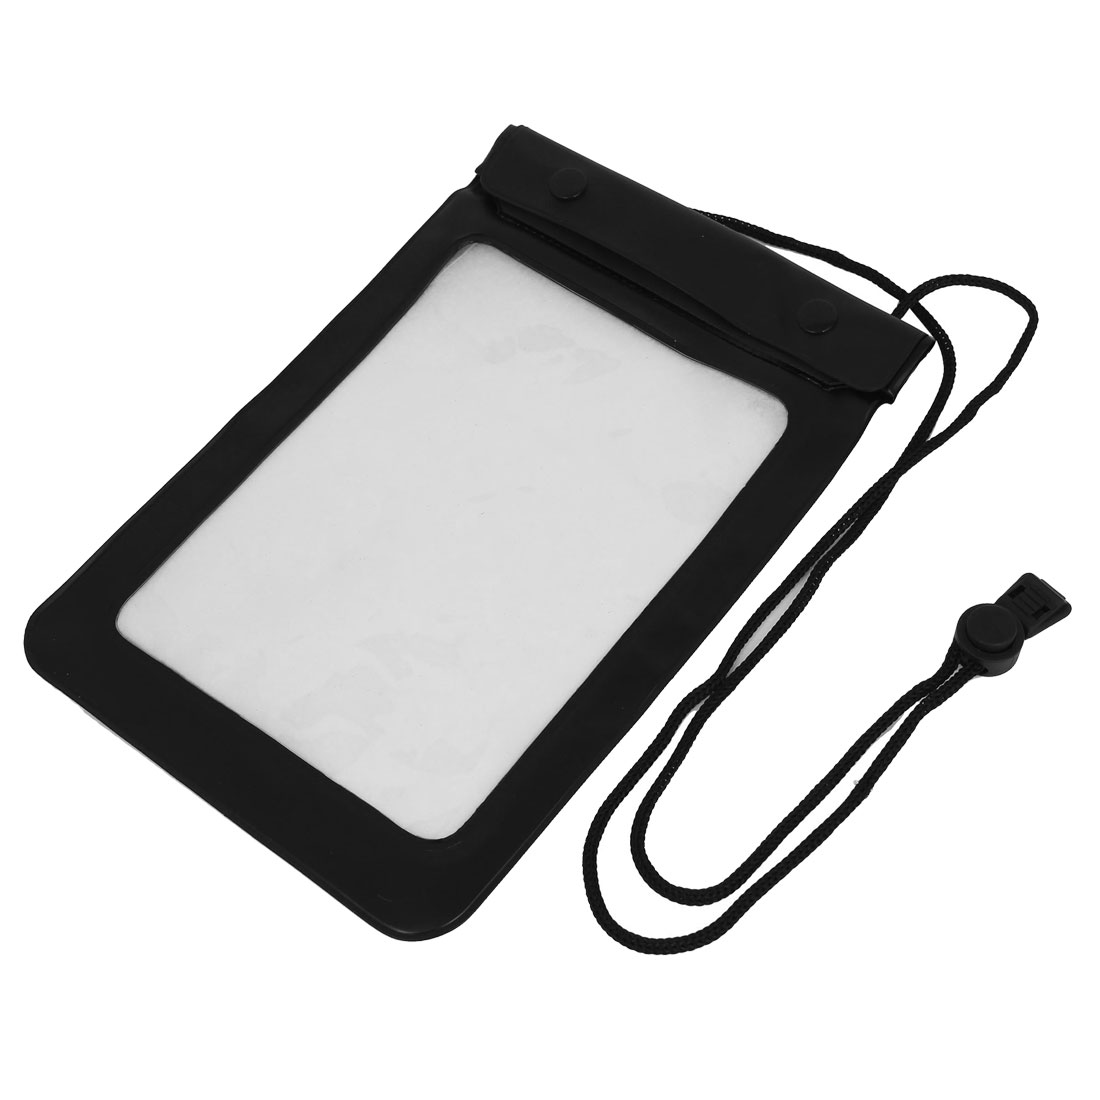 "Waterproof Pouch Bag Underwater Diving Case Cover Black for 7"" 7.7"" Tablet PAD"